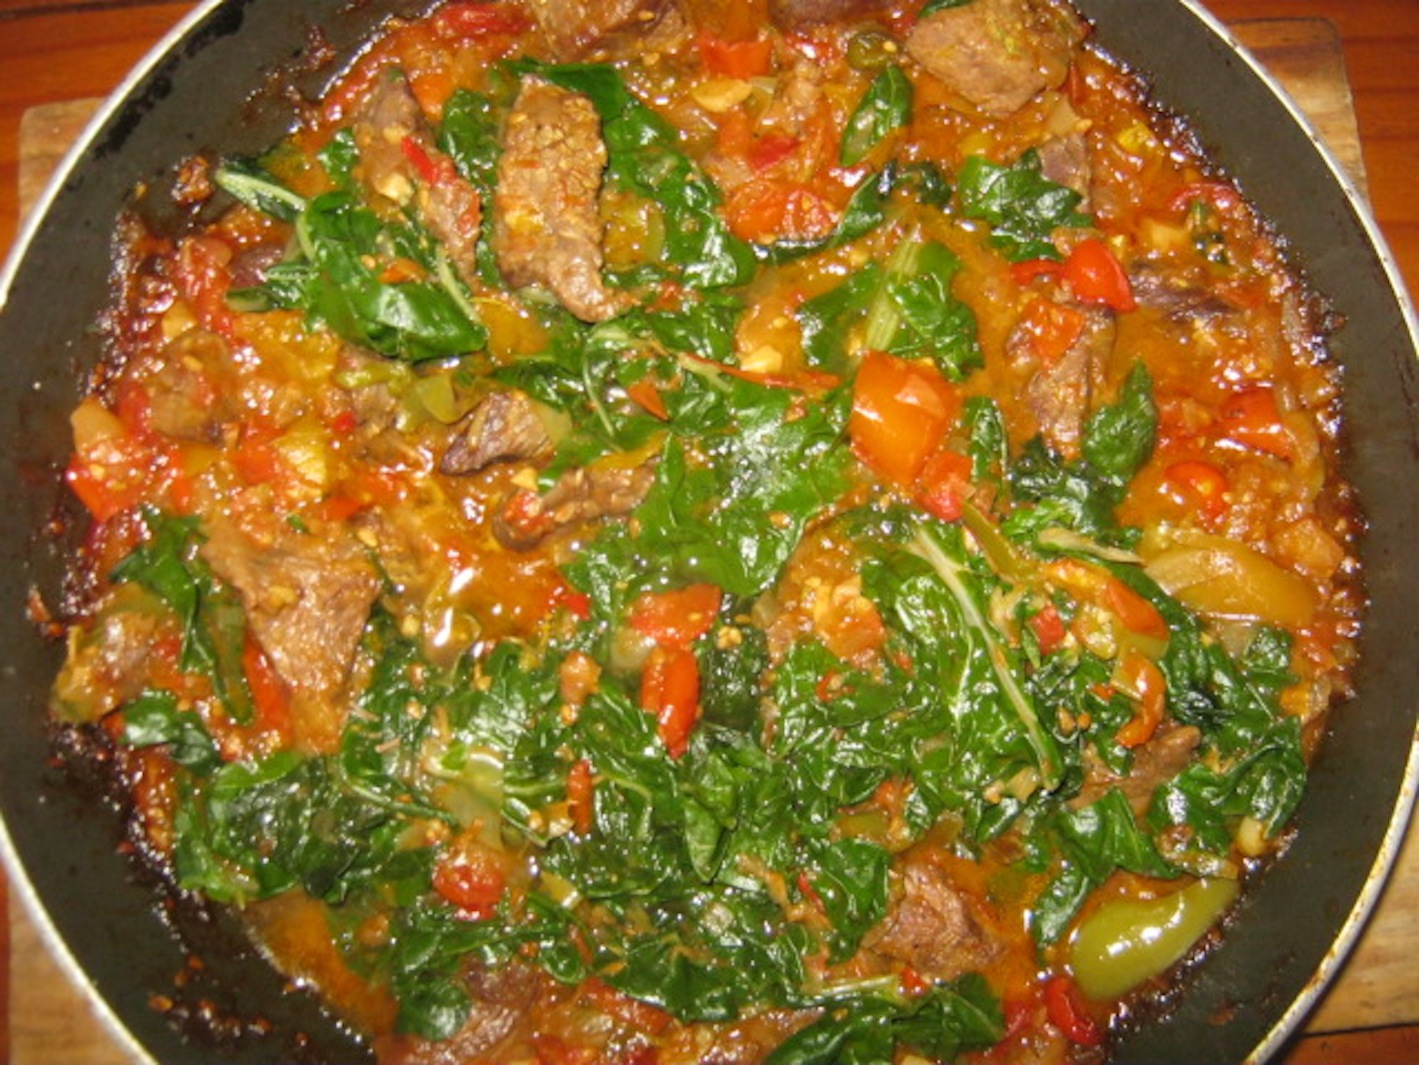 Shoko Ghanaian Beef and Spinach Stew